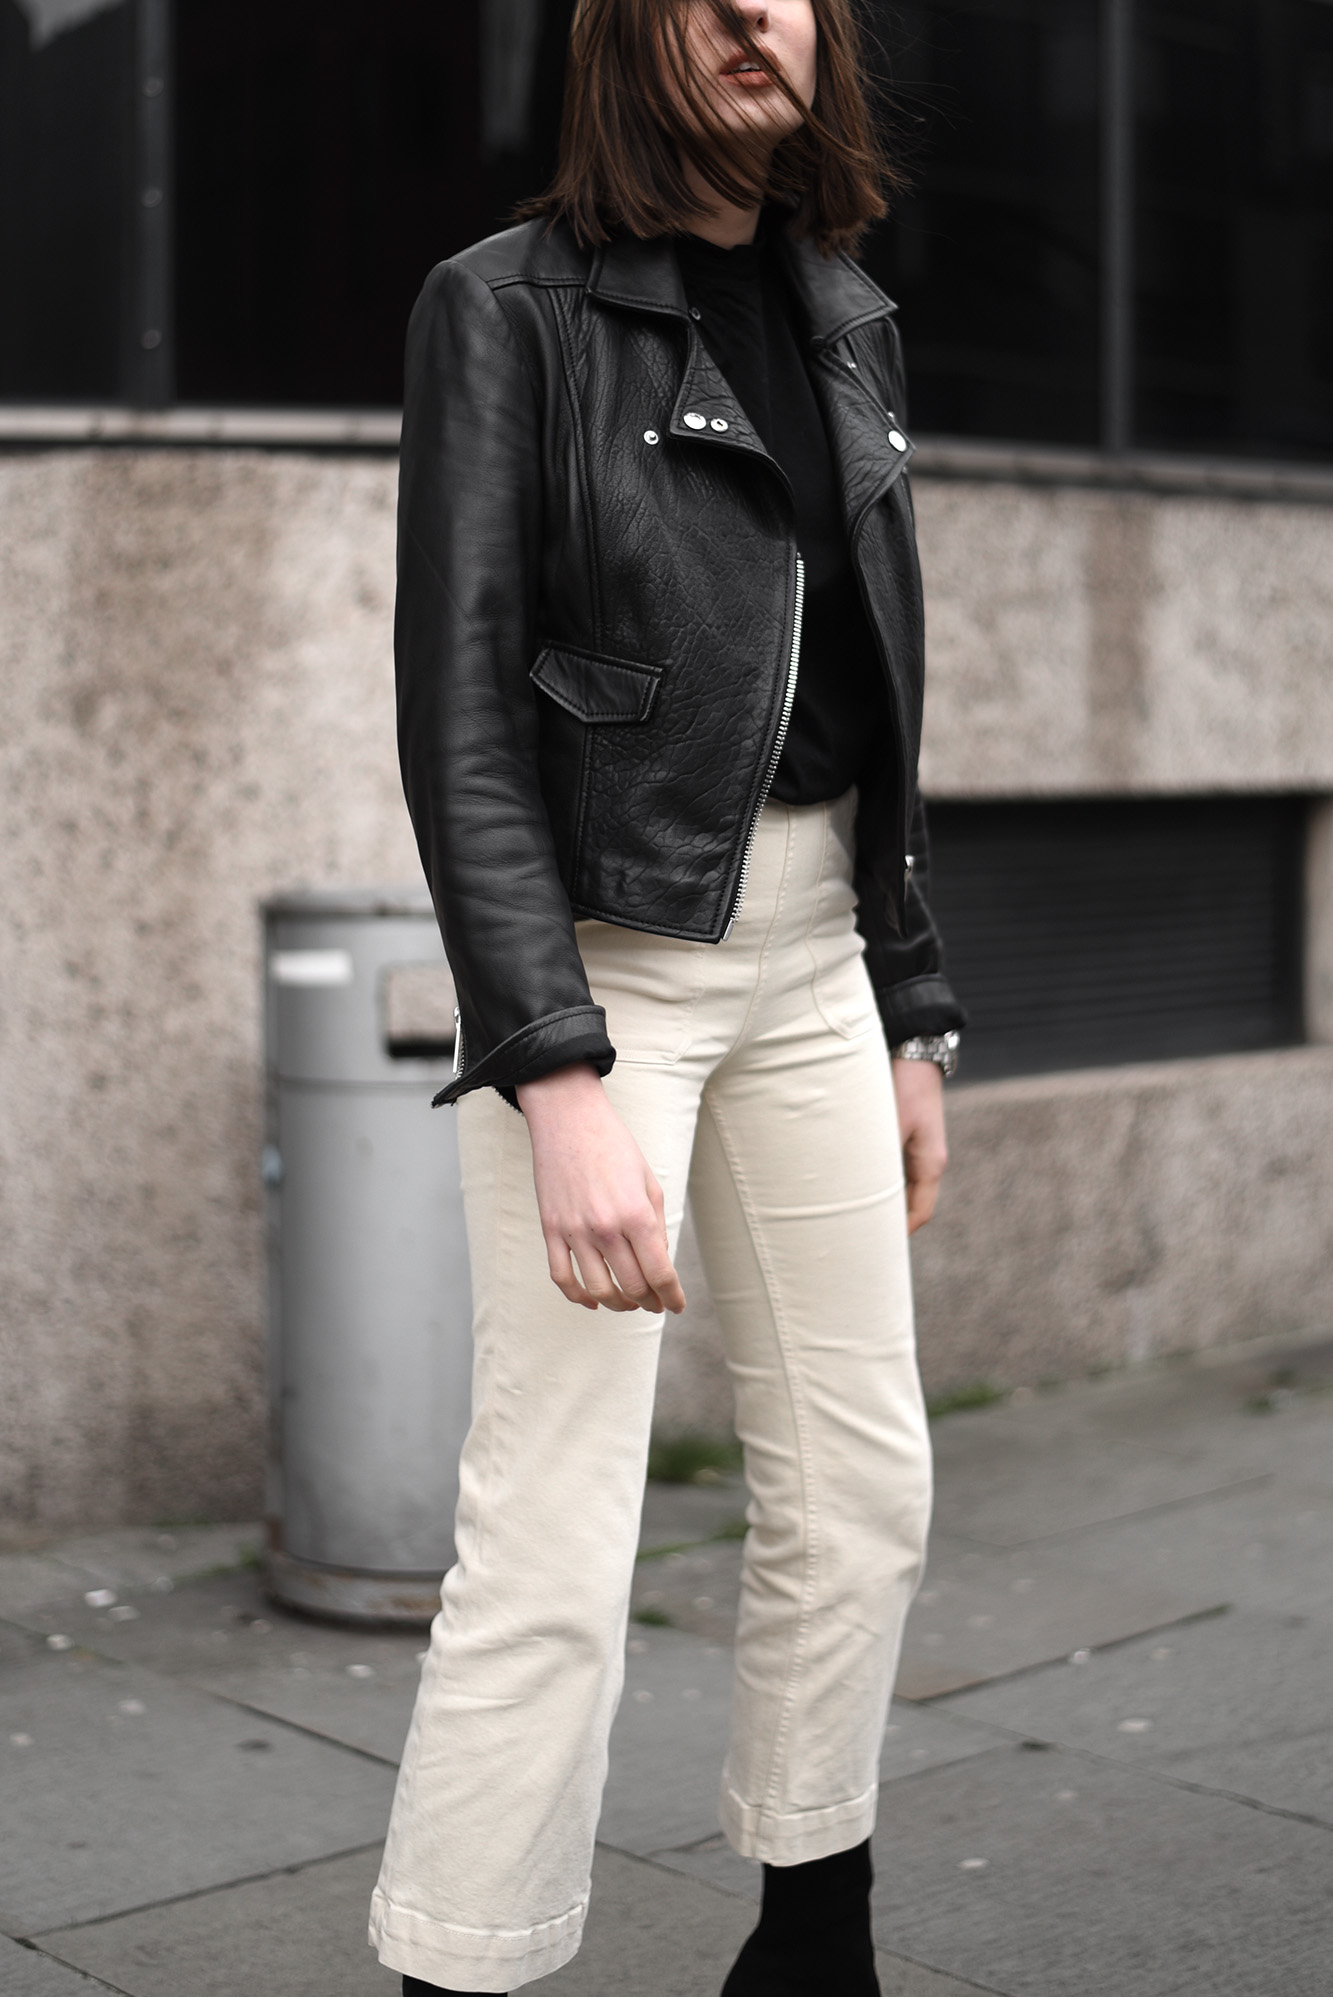 Minimal Transitional Outfits